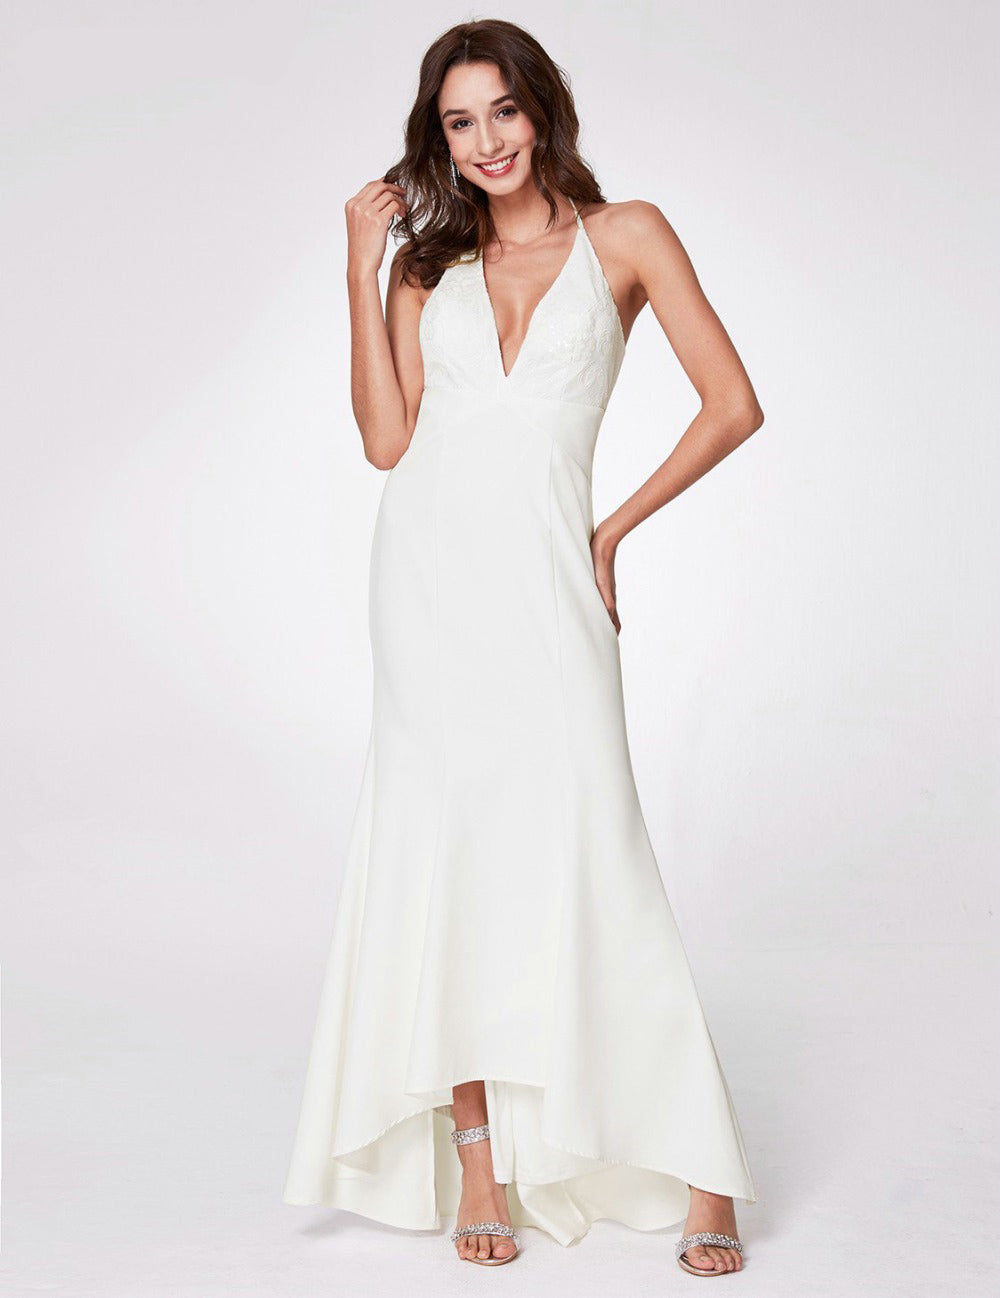 f5ed7ca4e4 The Trina Boho Deep V Fit & Flare Beach Wedding Gown :: Available Up to  Plus Size 26 W